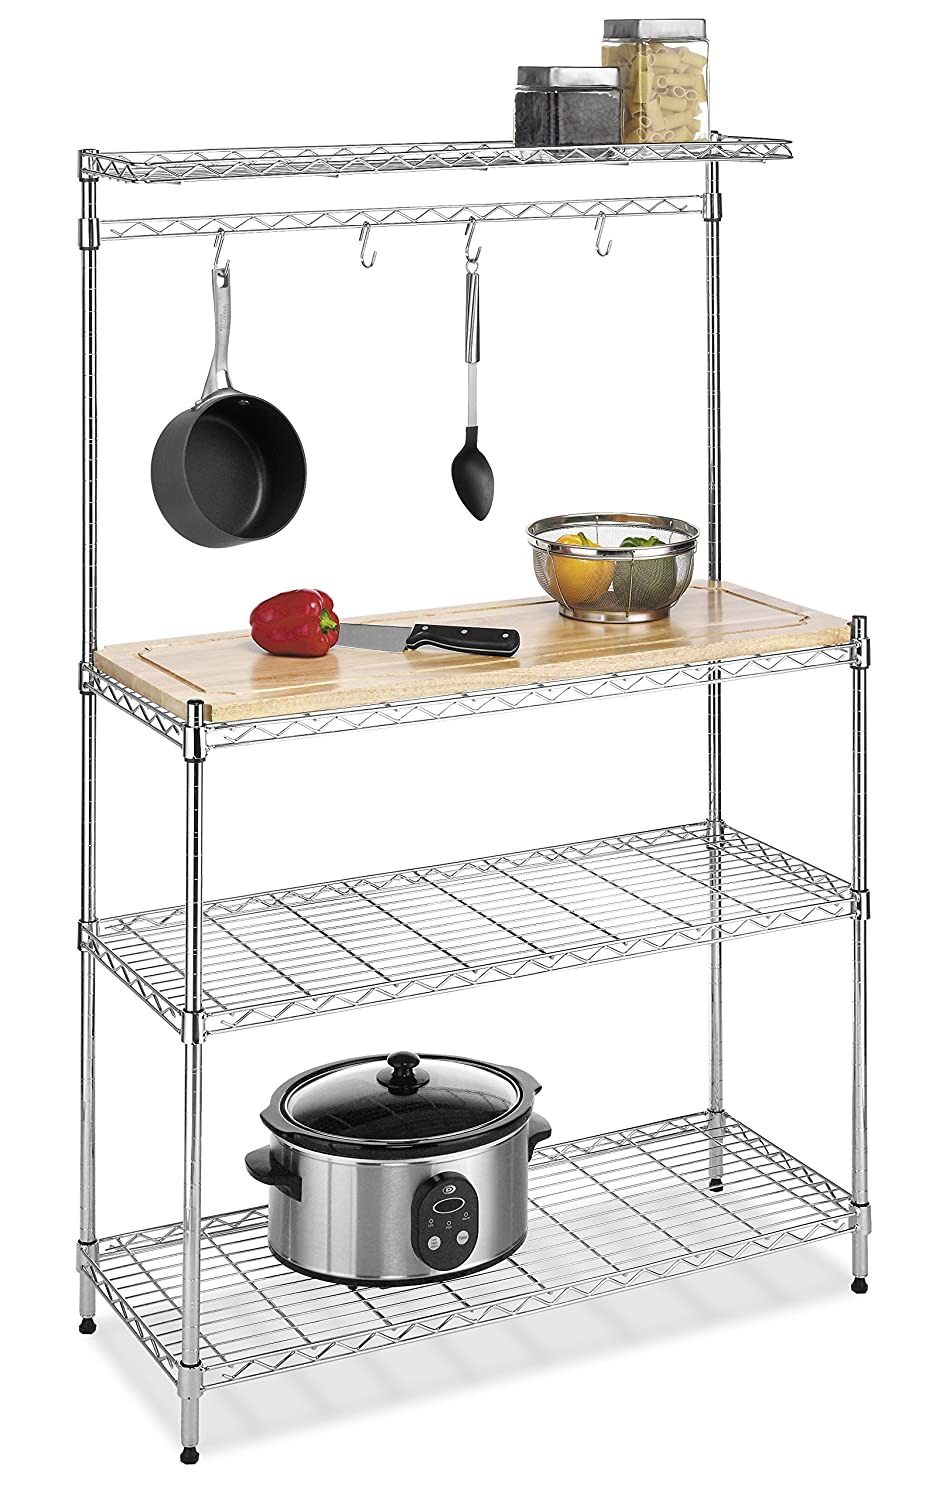 Amazoncom ShelvesRacks HomeKitchen Rack Shelves Rack